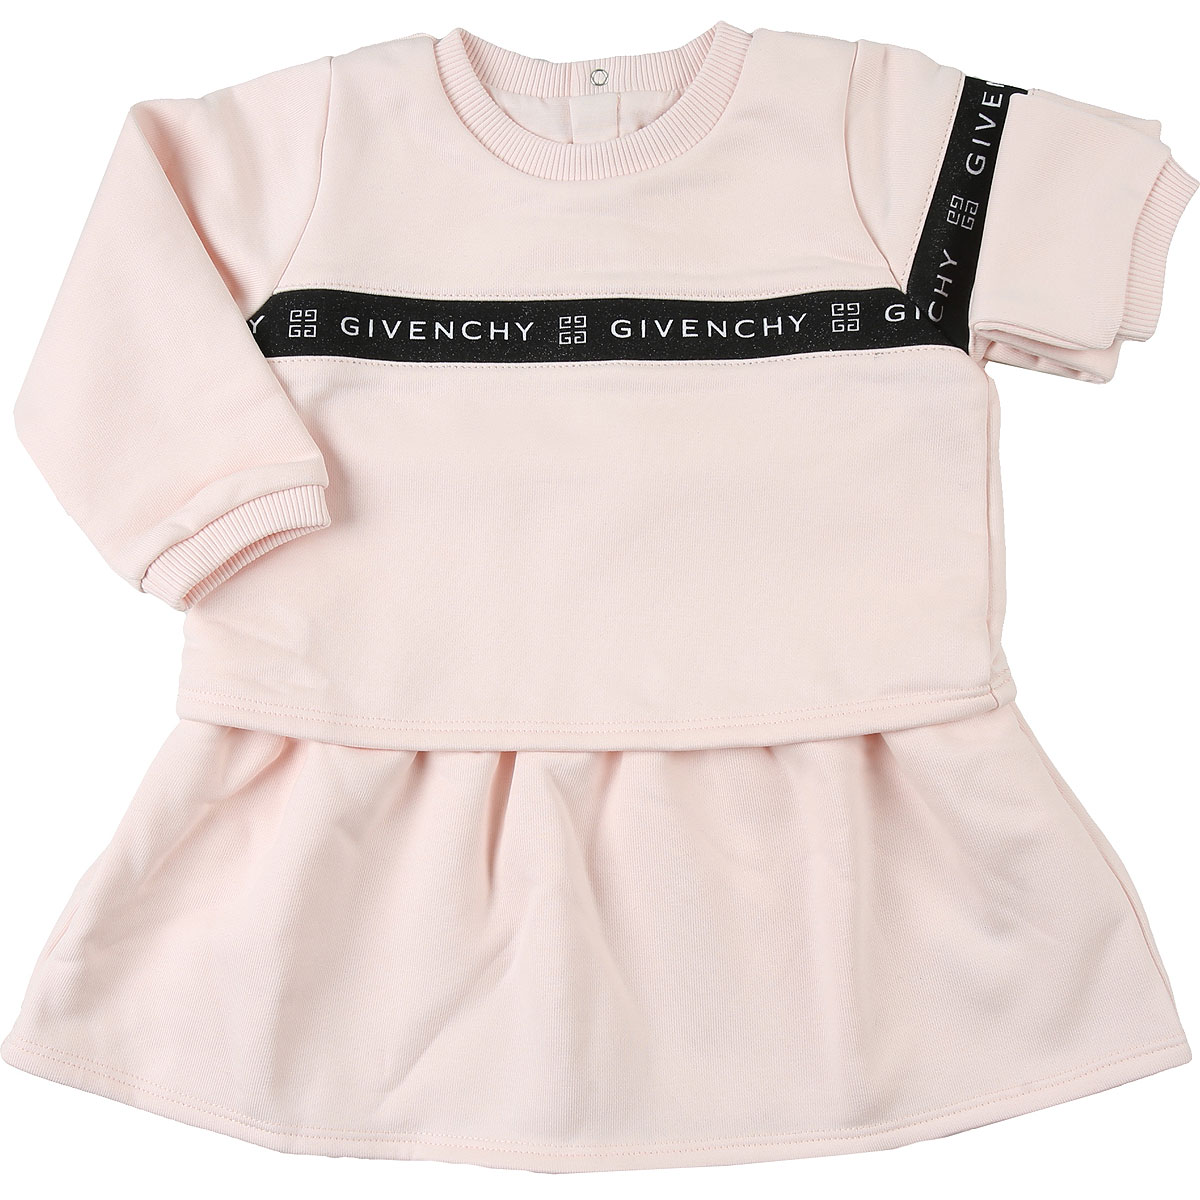 Givenchy Baby Dress for Girls On Sale, Pale Pink, Cotton, 2019, 12M 18M 2Y 3Y 9M